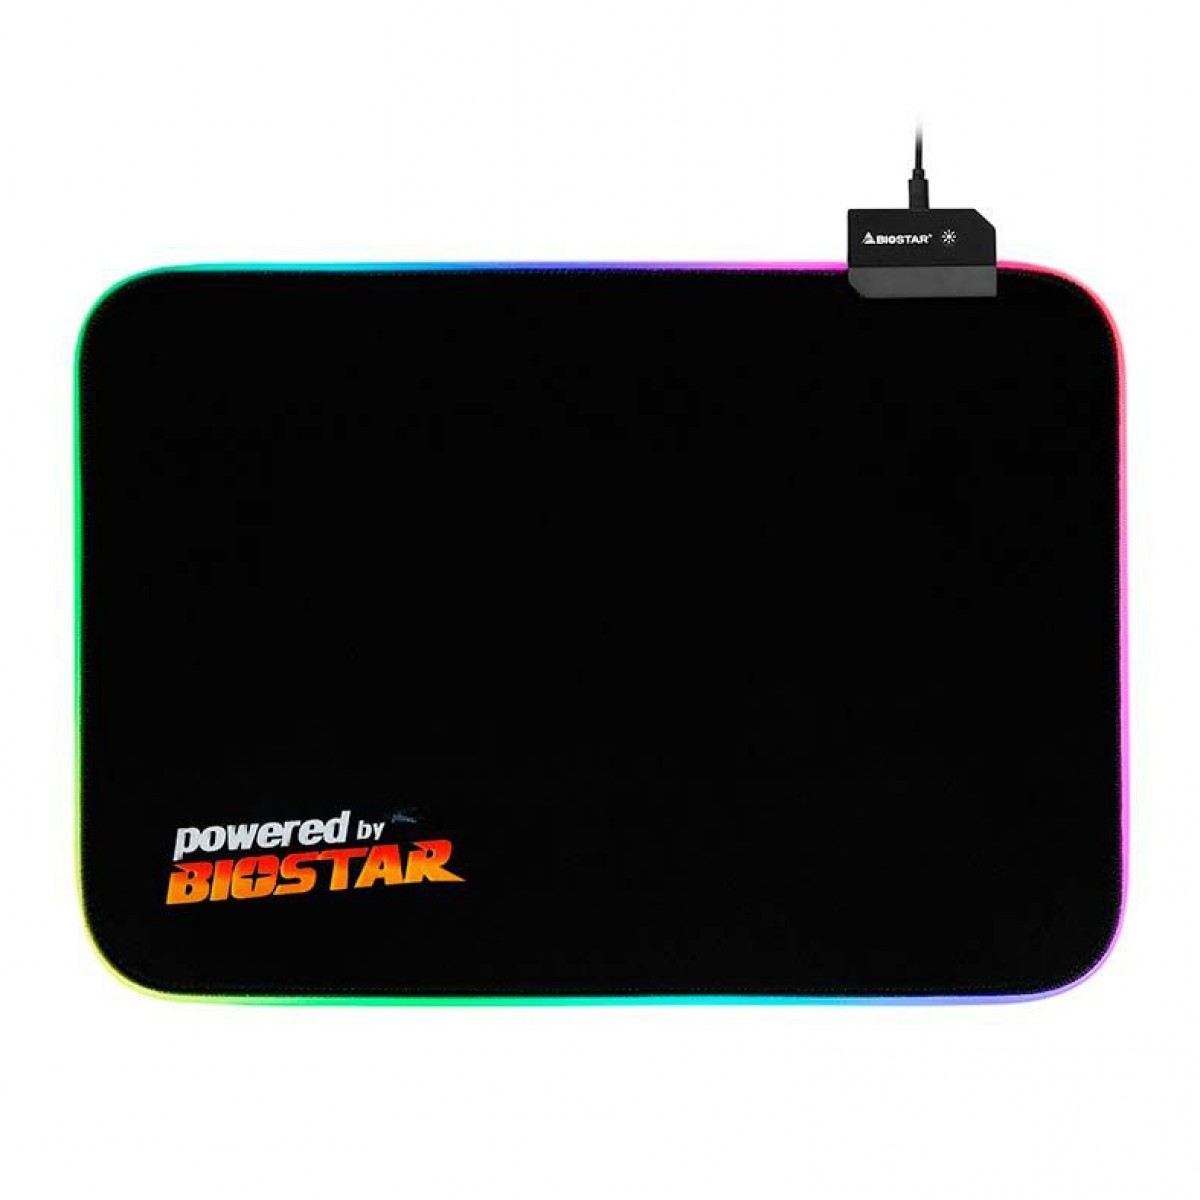 Mouse Pad Gamer Biostar Racing, Médio, 350X250X4MM, 81-510-000001RW